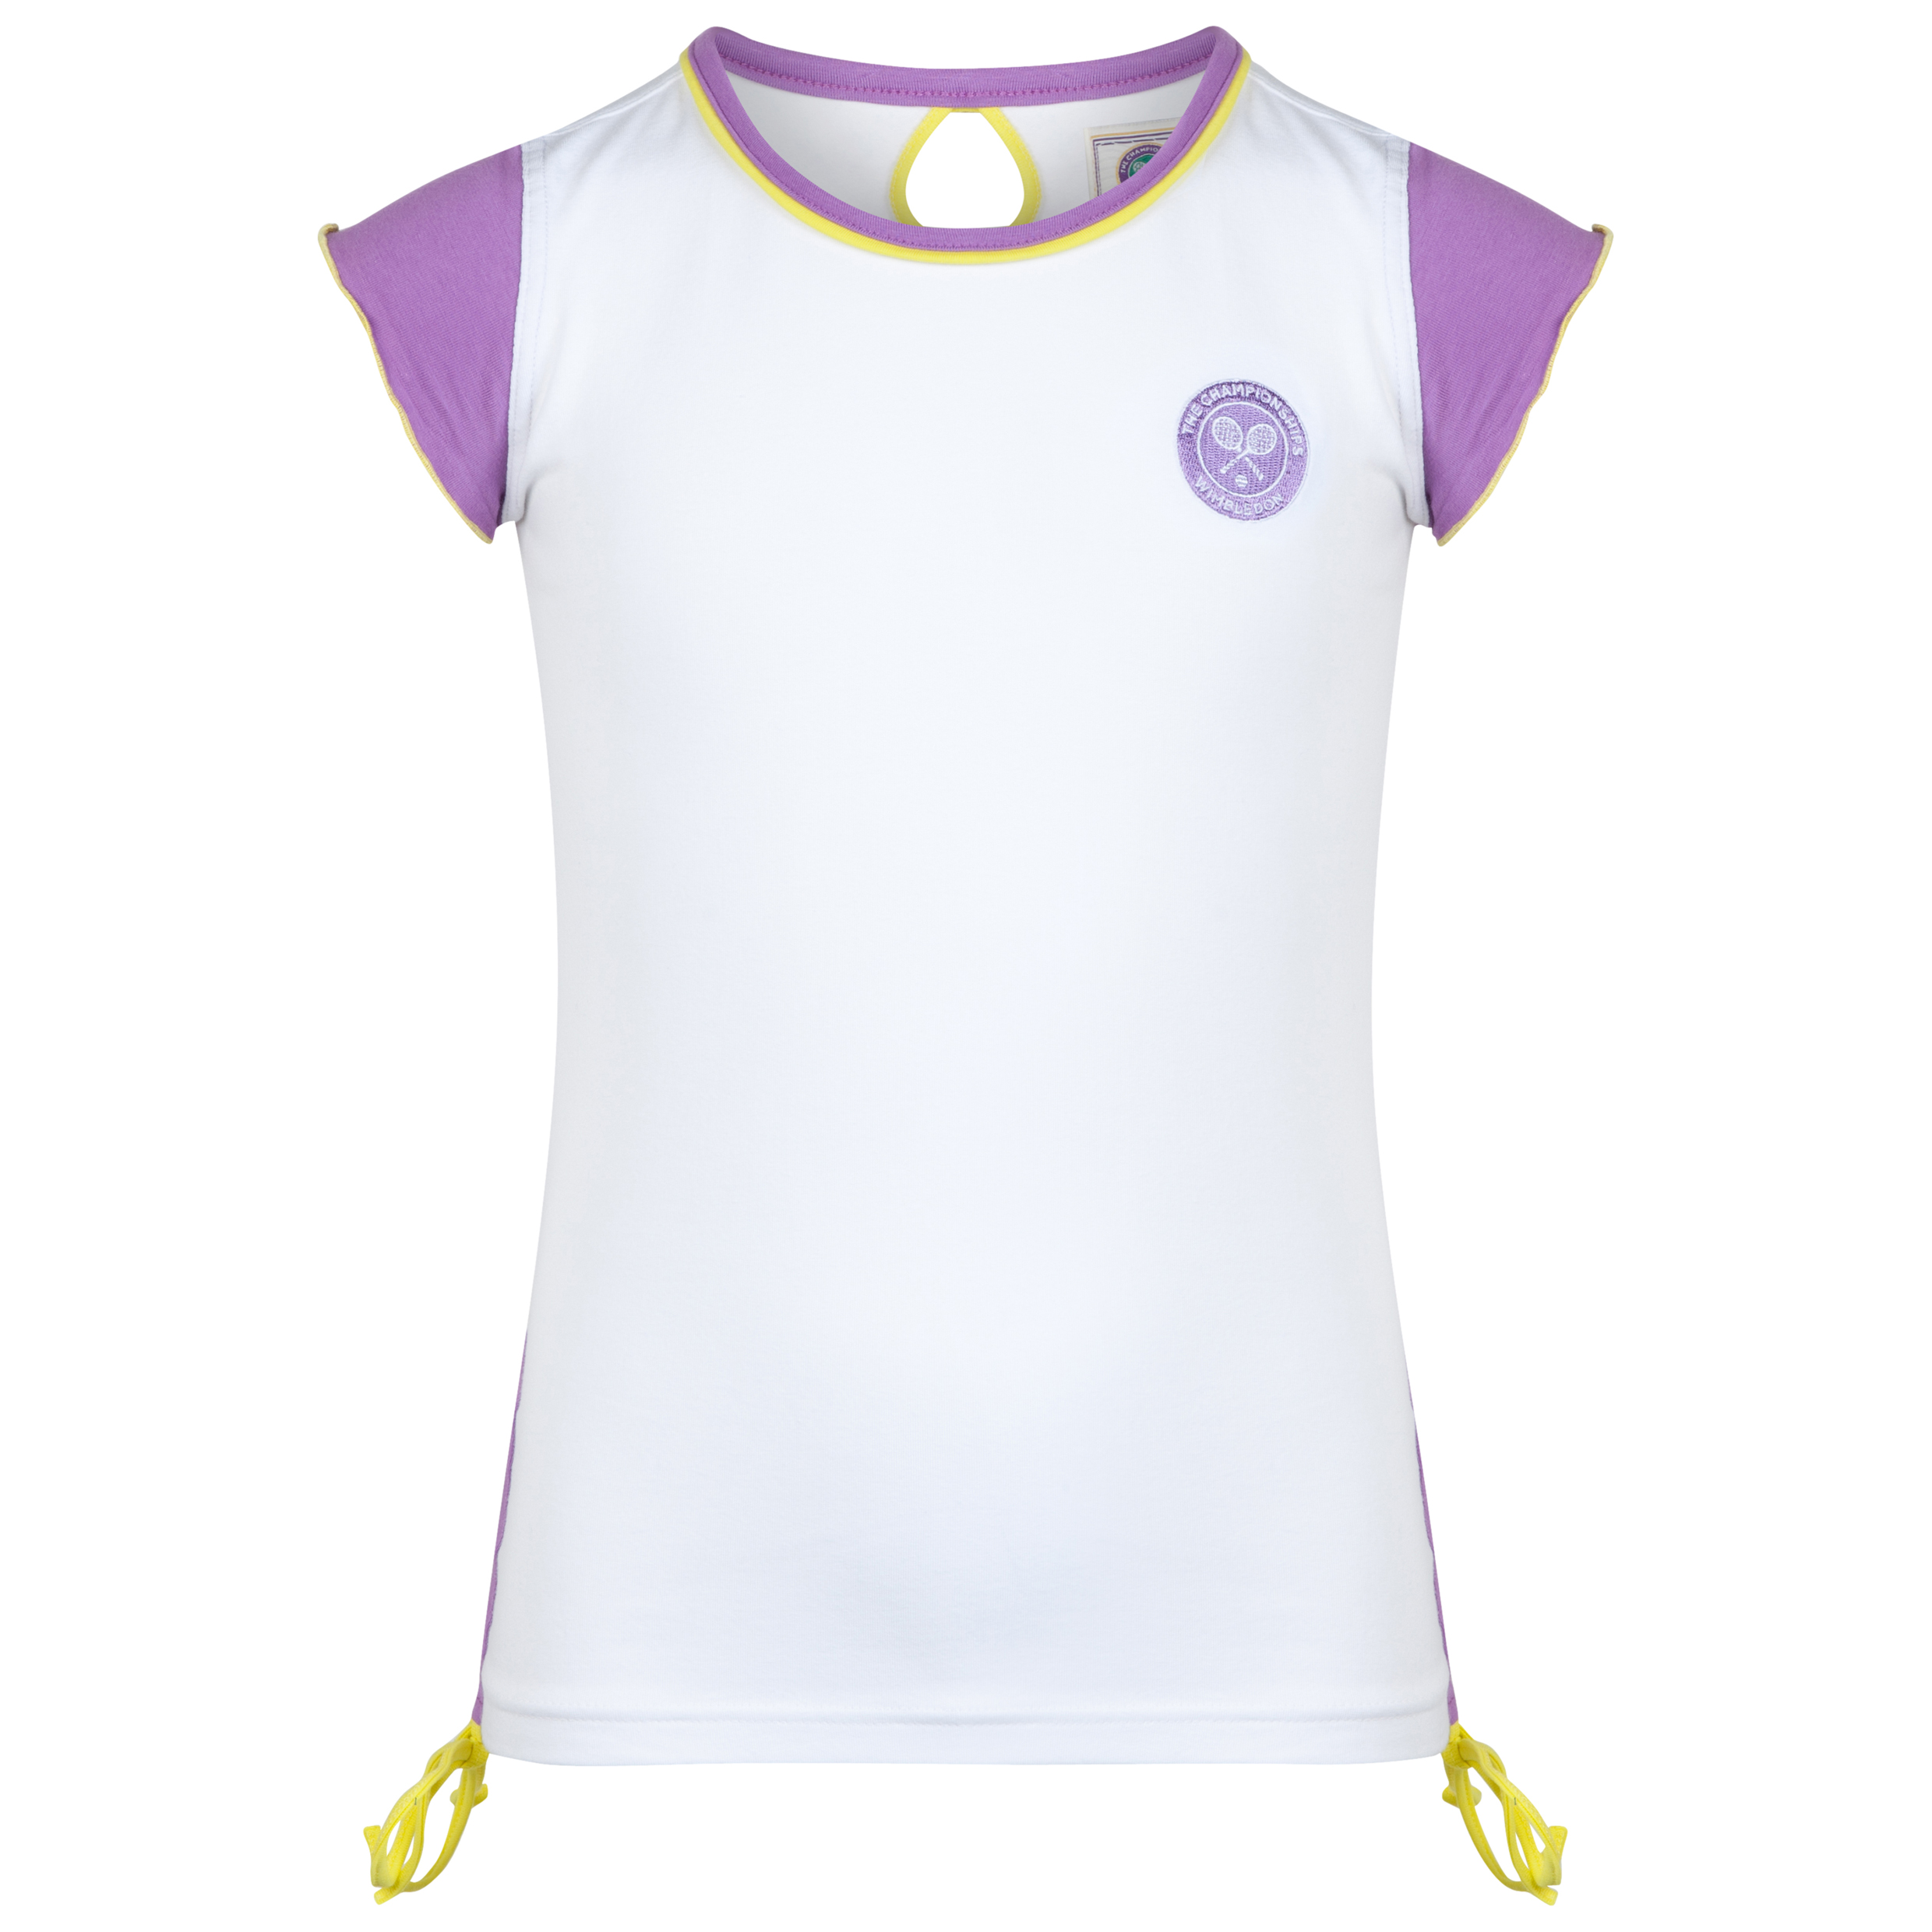 Wimbledon Capped Sleeve T-Shirt - Girls White